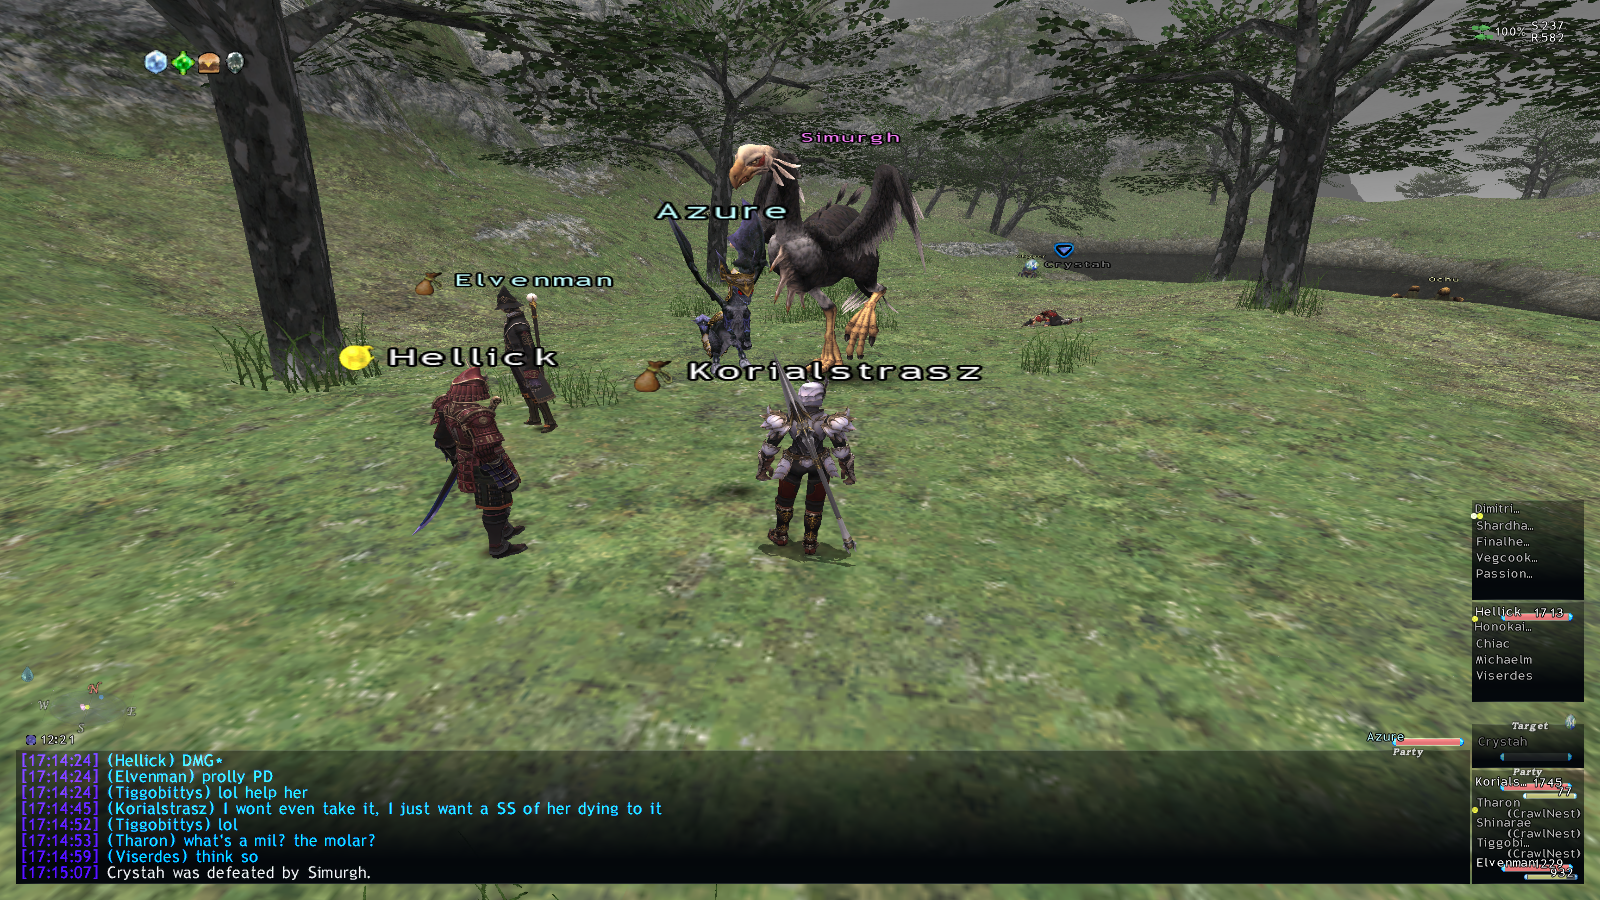 korialstrasz ffxi fail from ffxiah randomly this spotted thought screenshot pretty before fucking last xiii time talling posted sure random